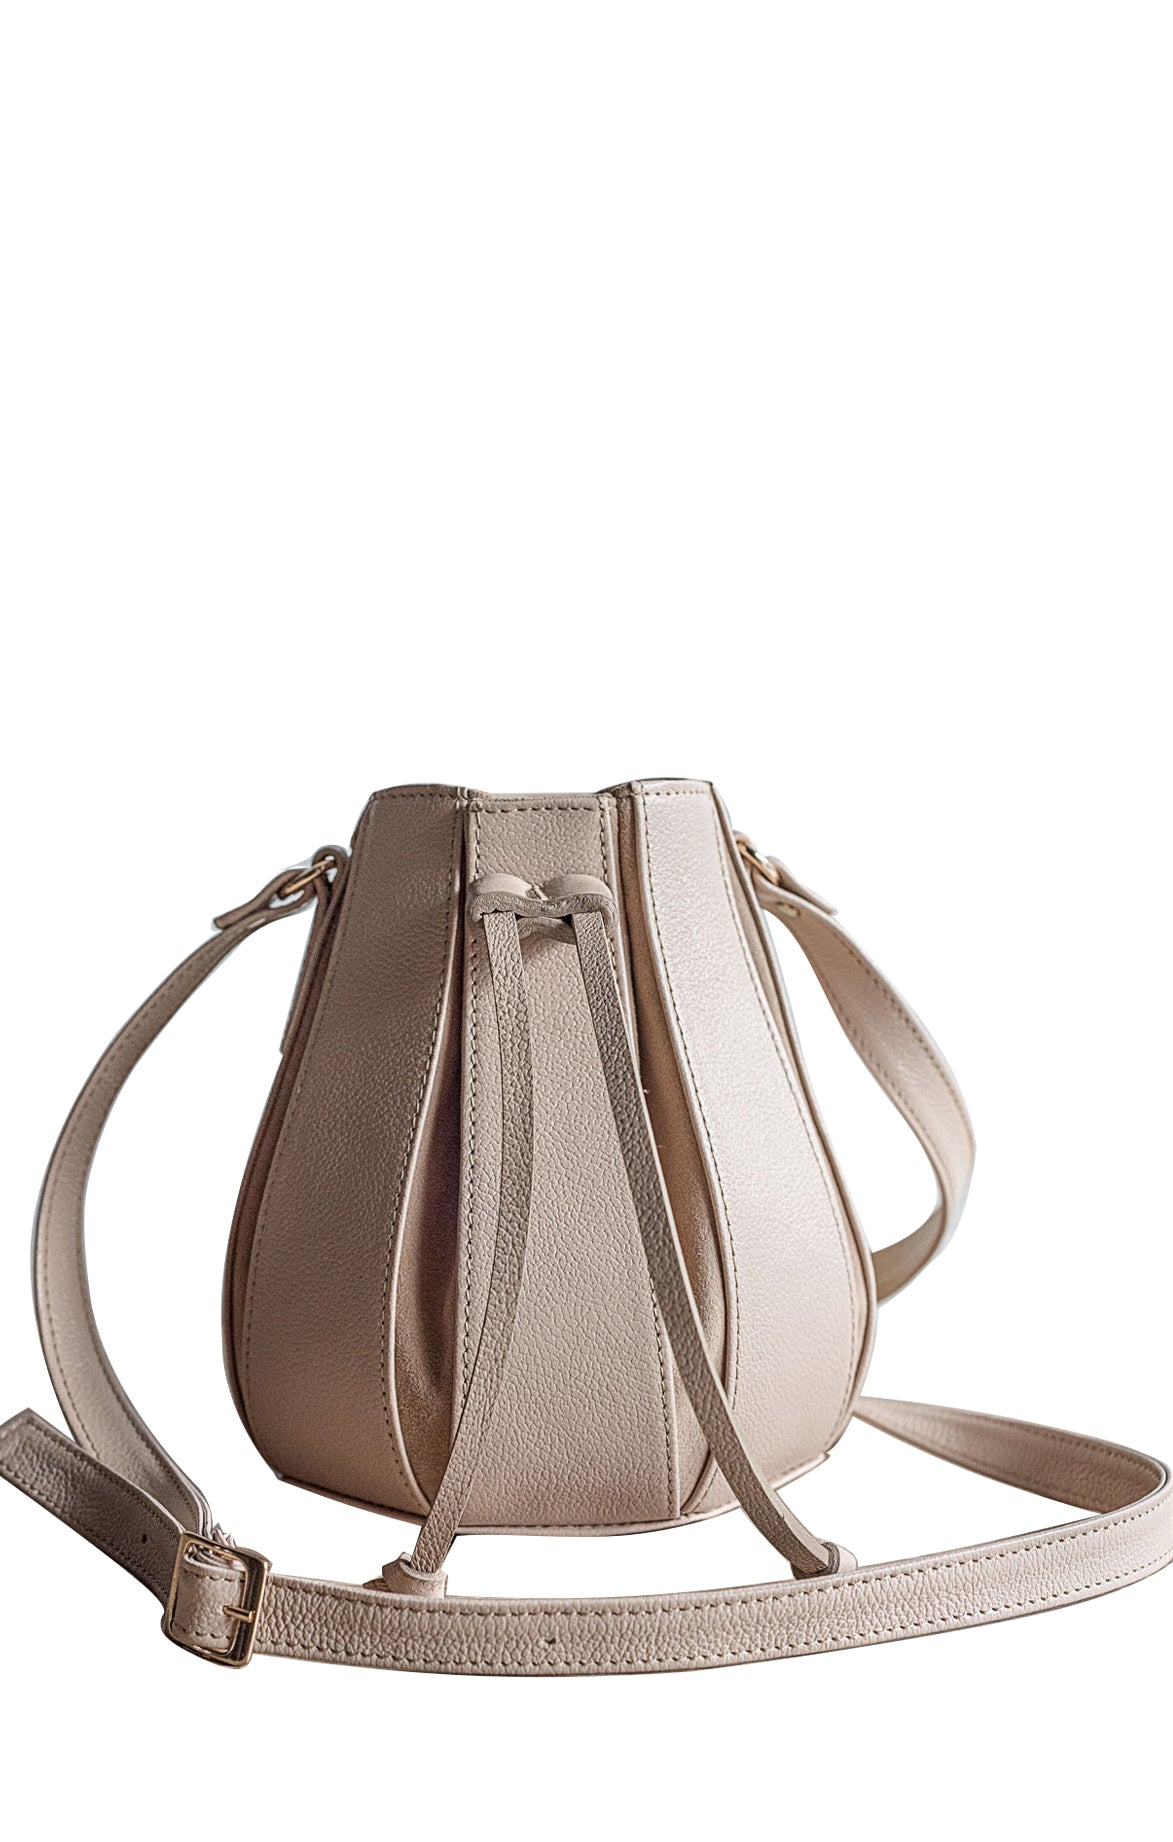 Lolita Nude Shoulder Bag